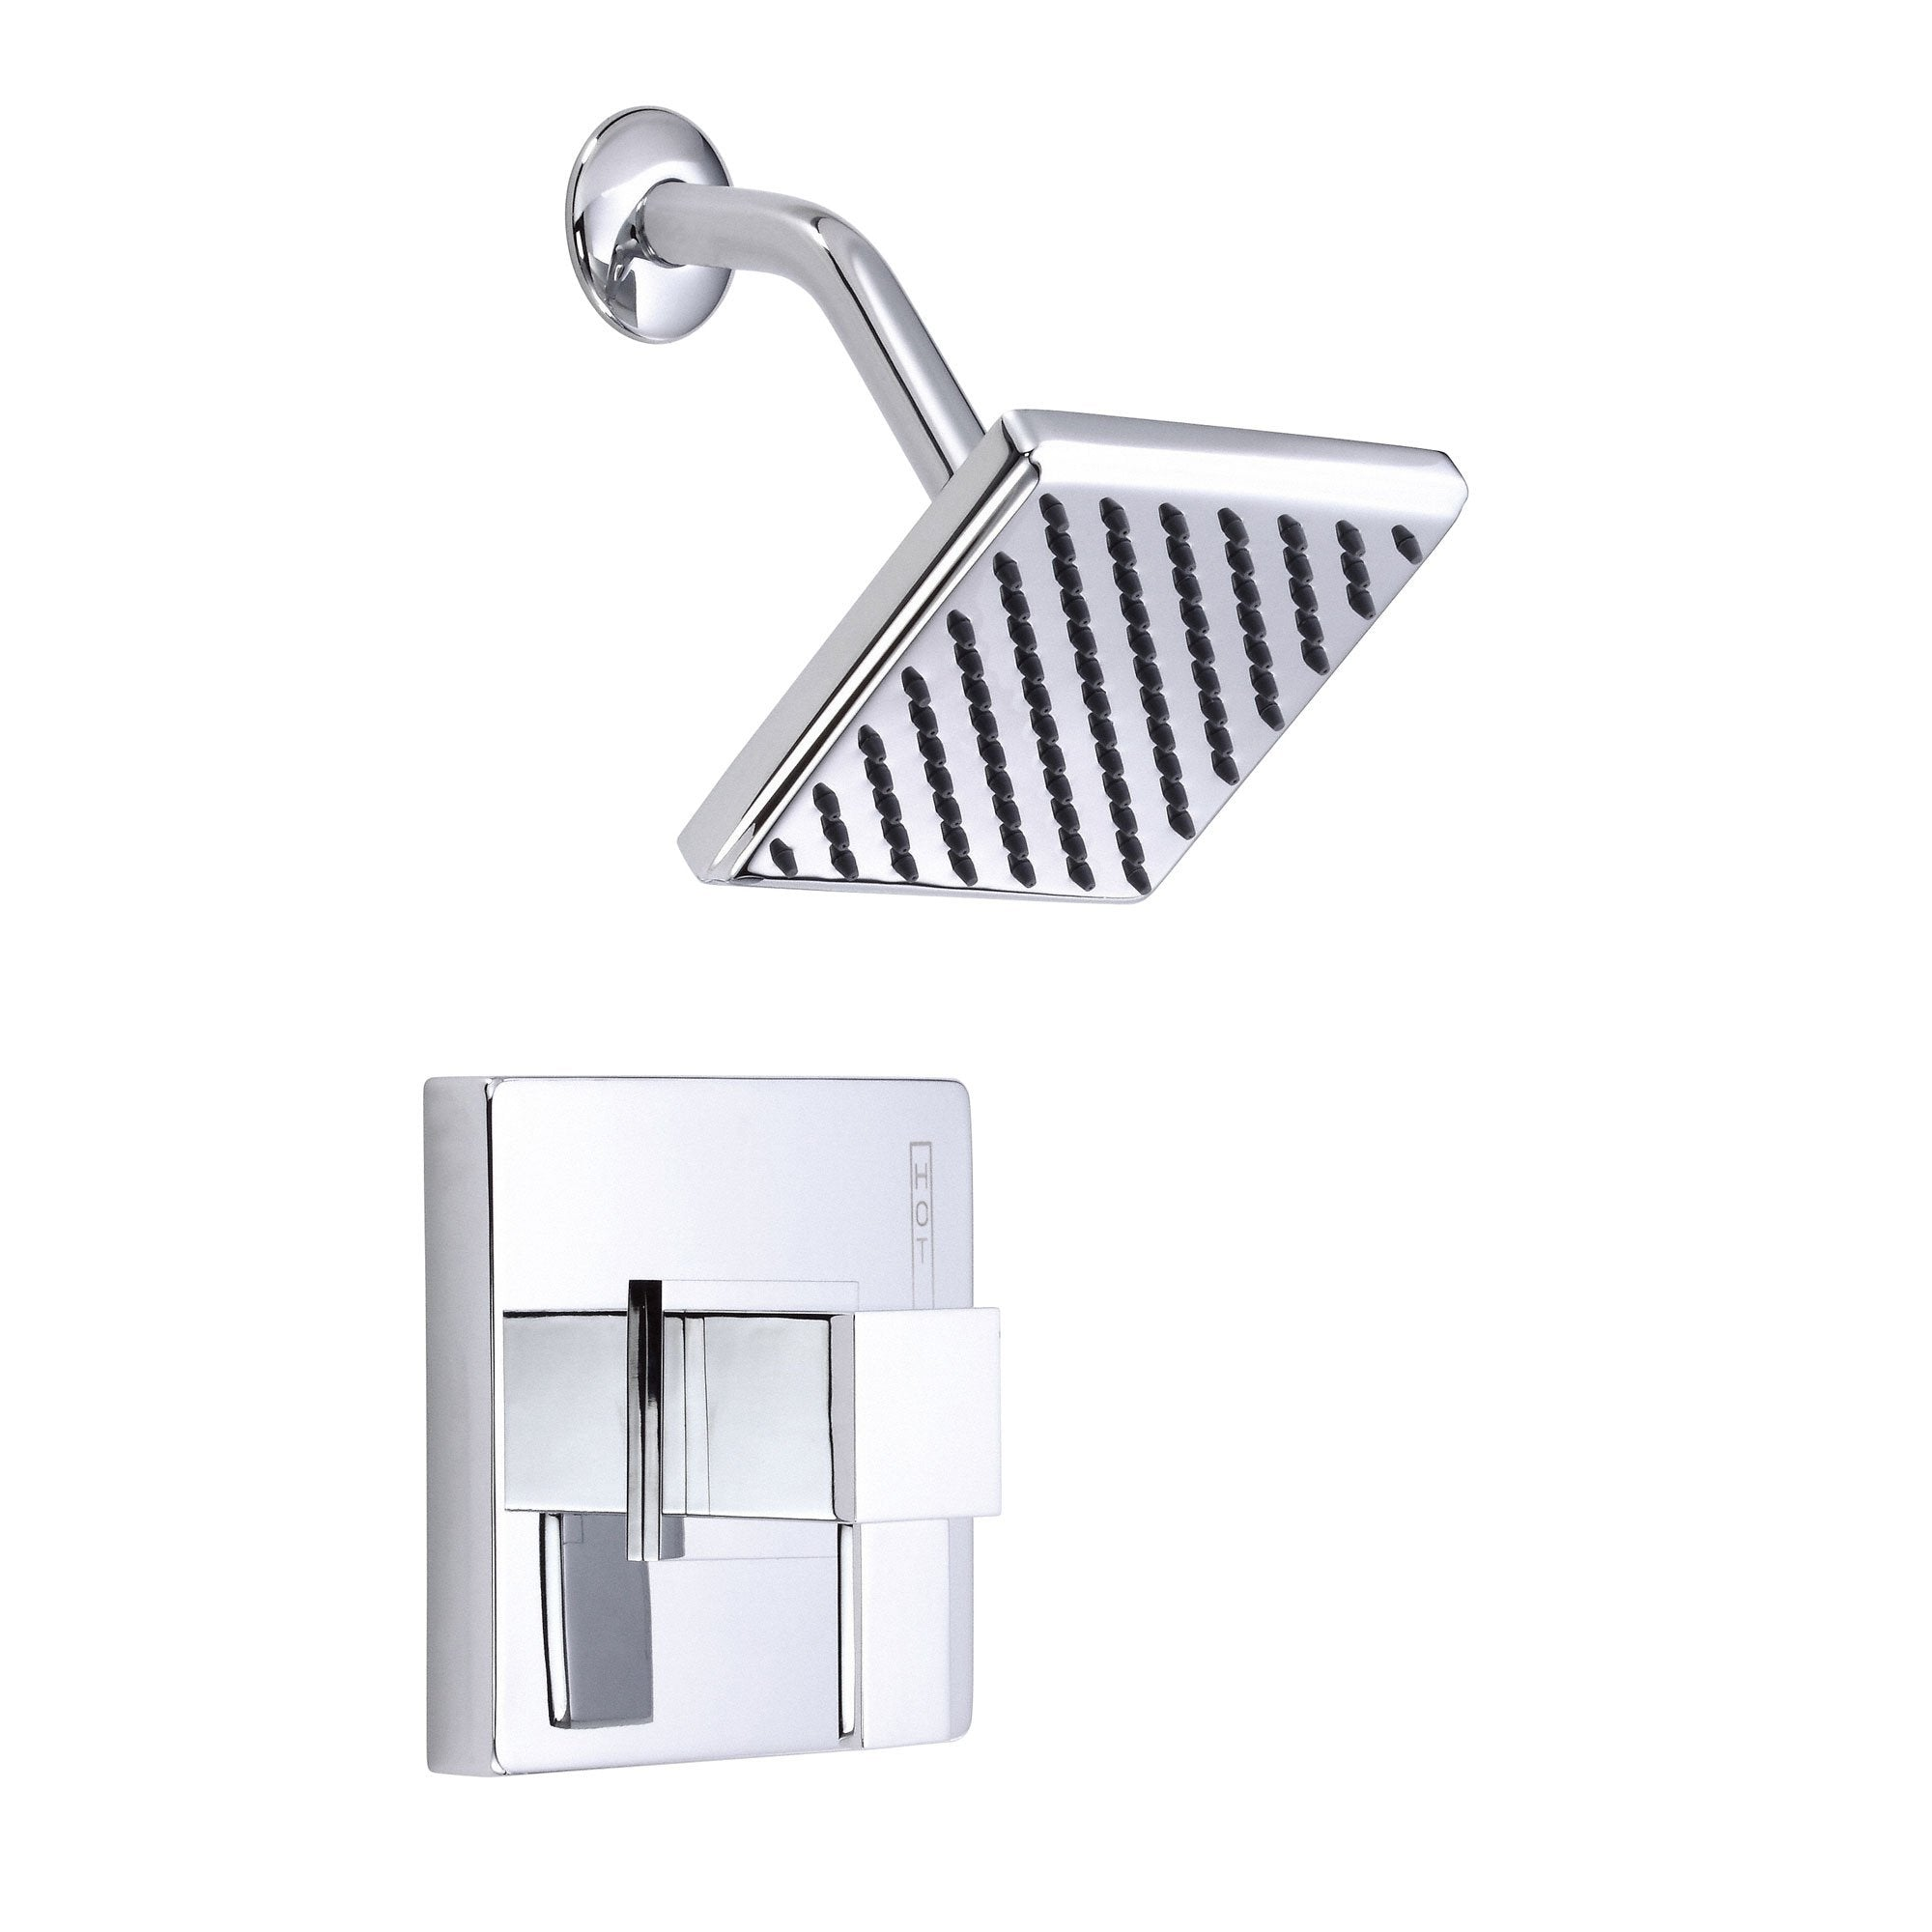 Danze Reef Chrome Modern Single Handle Square Shower Only Faucet INCLUDES Rough-in Valve